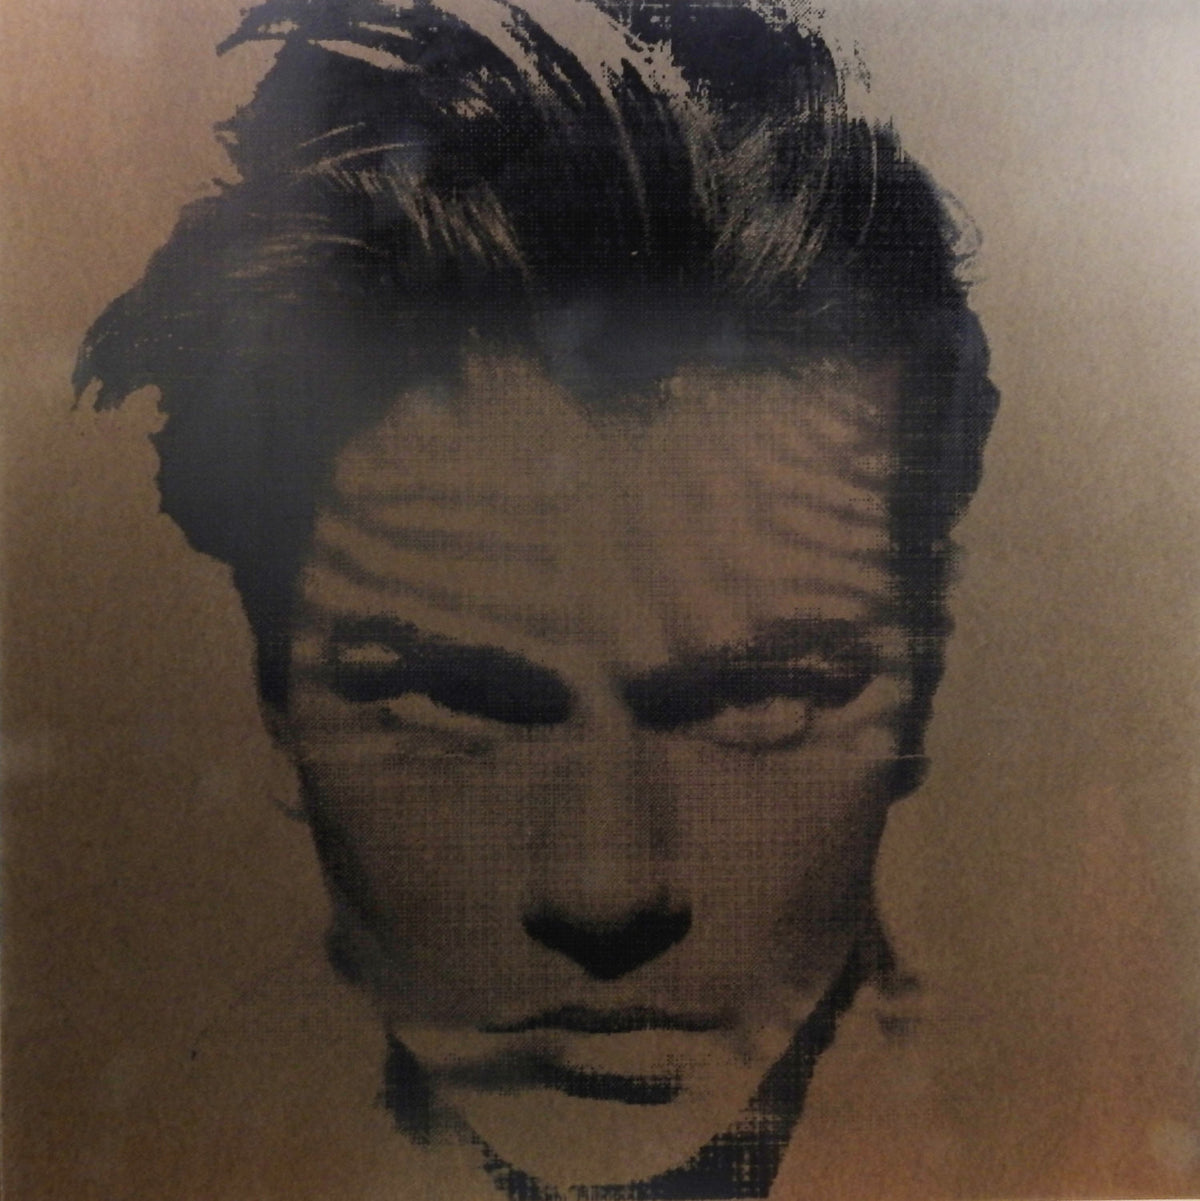 The Cegan James Dean River Phoenix Ltd. Print